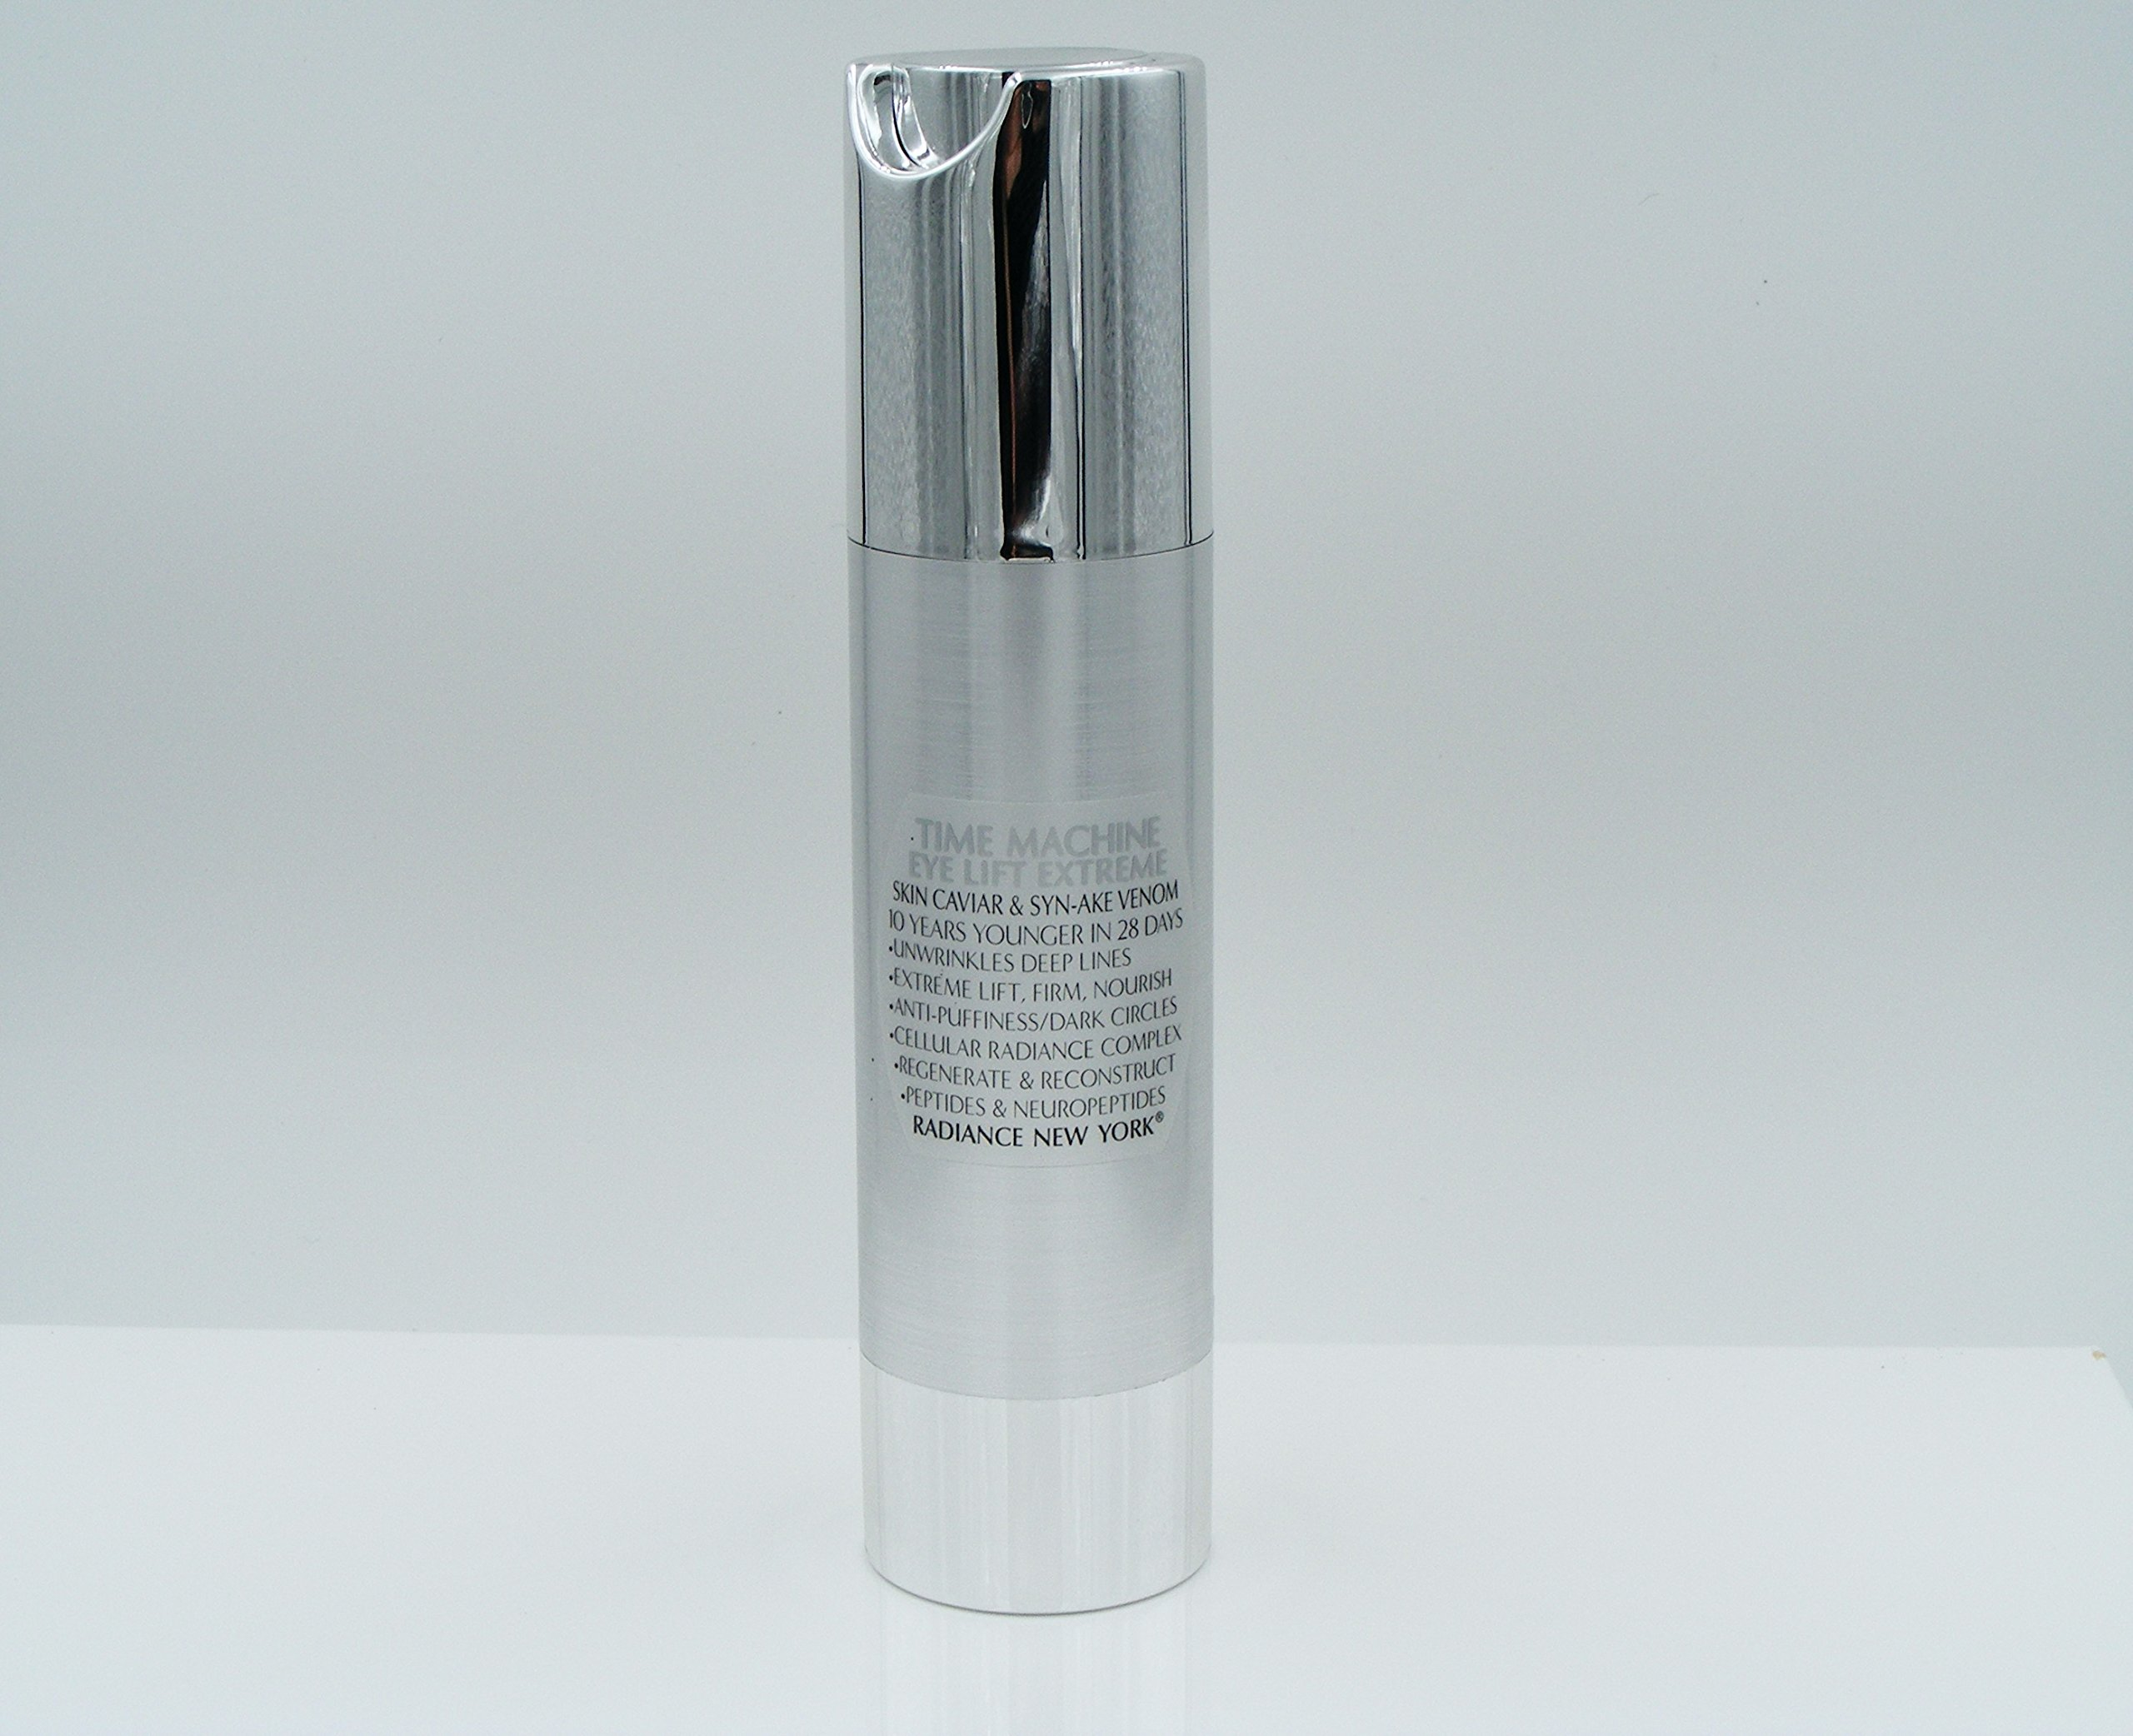 Time Machine Eye Lift Extreme. Skin Caviar & Snake Venom Intense Concentrate 1 oz